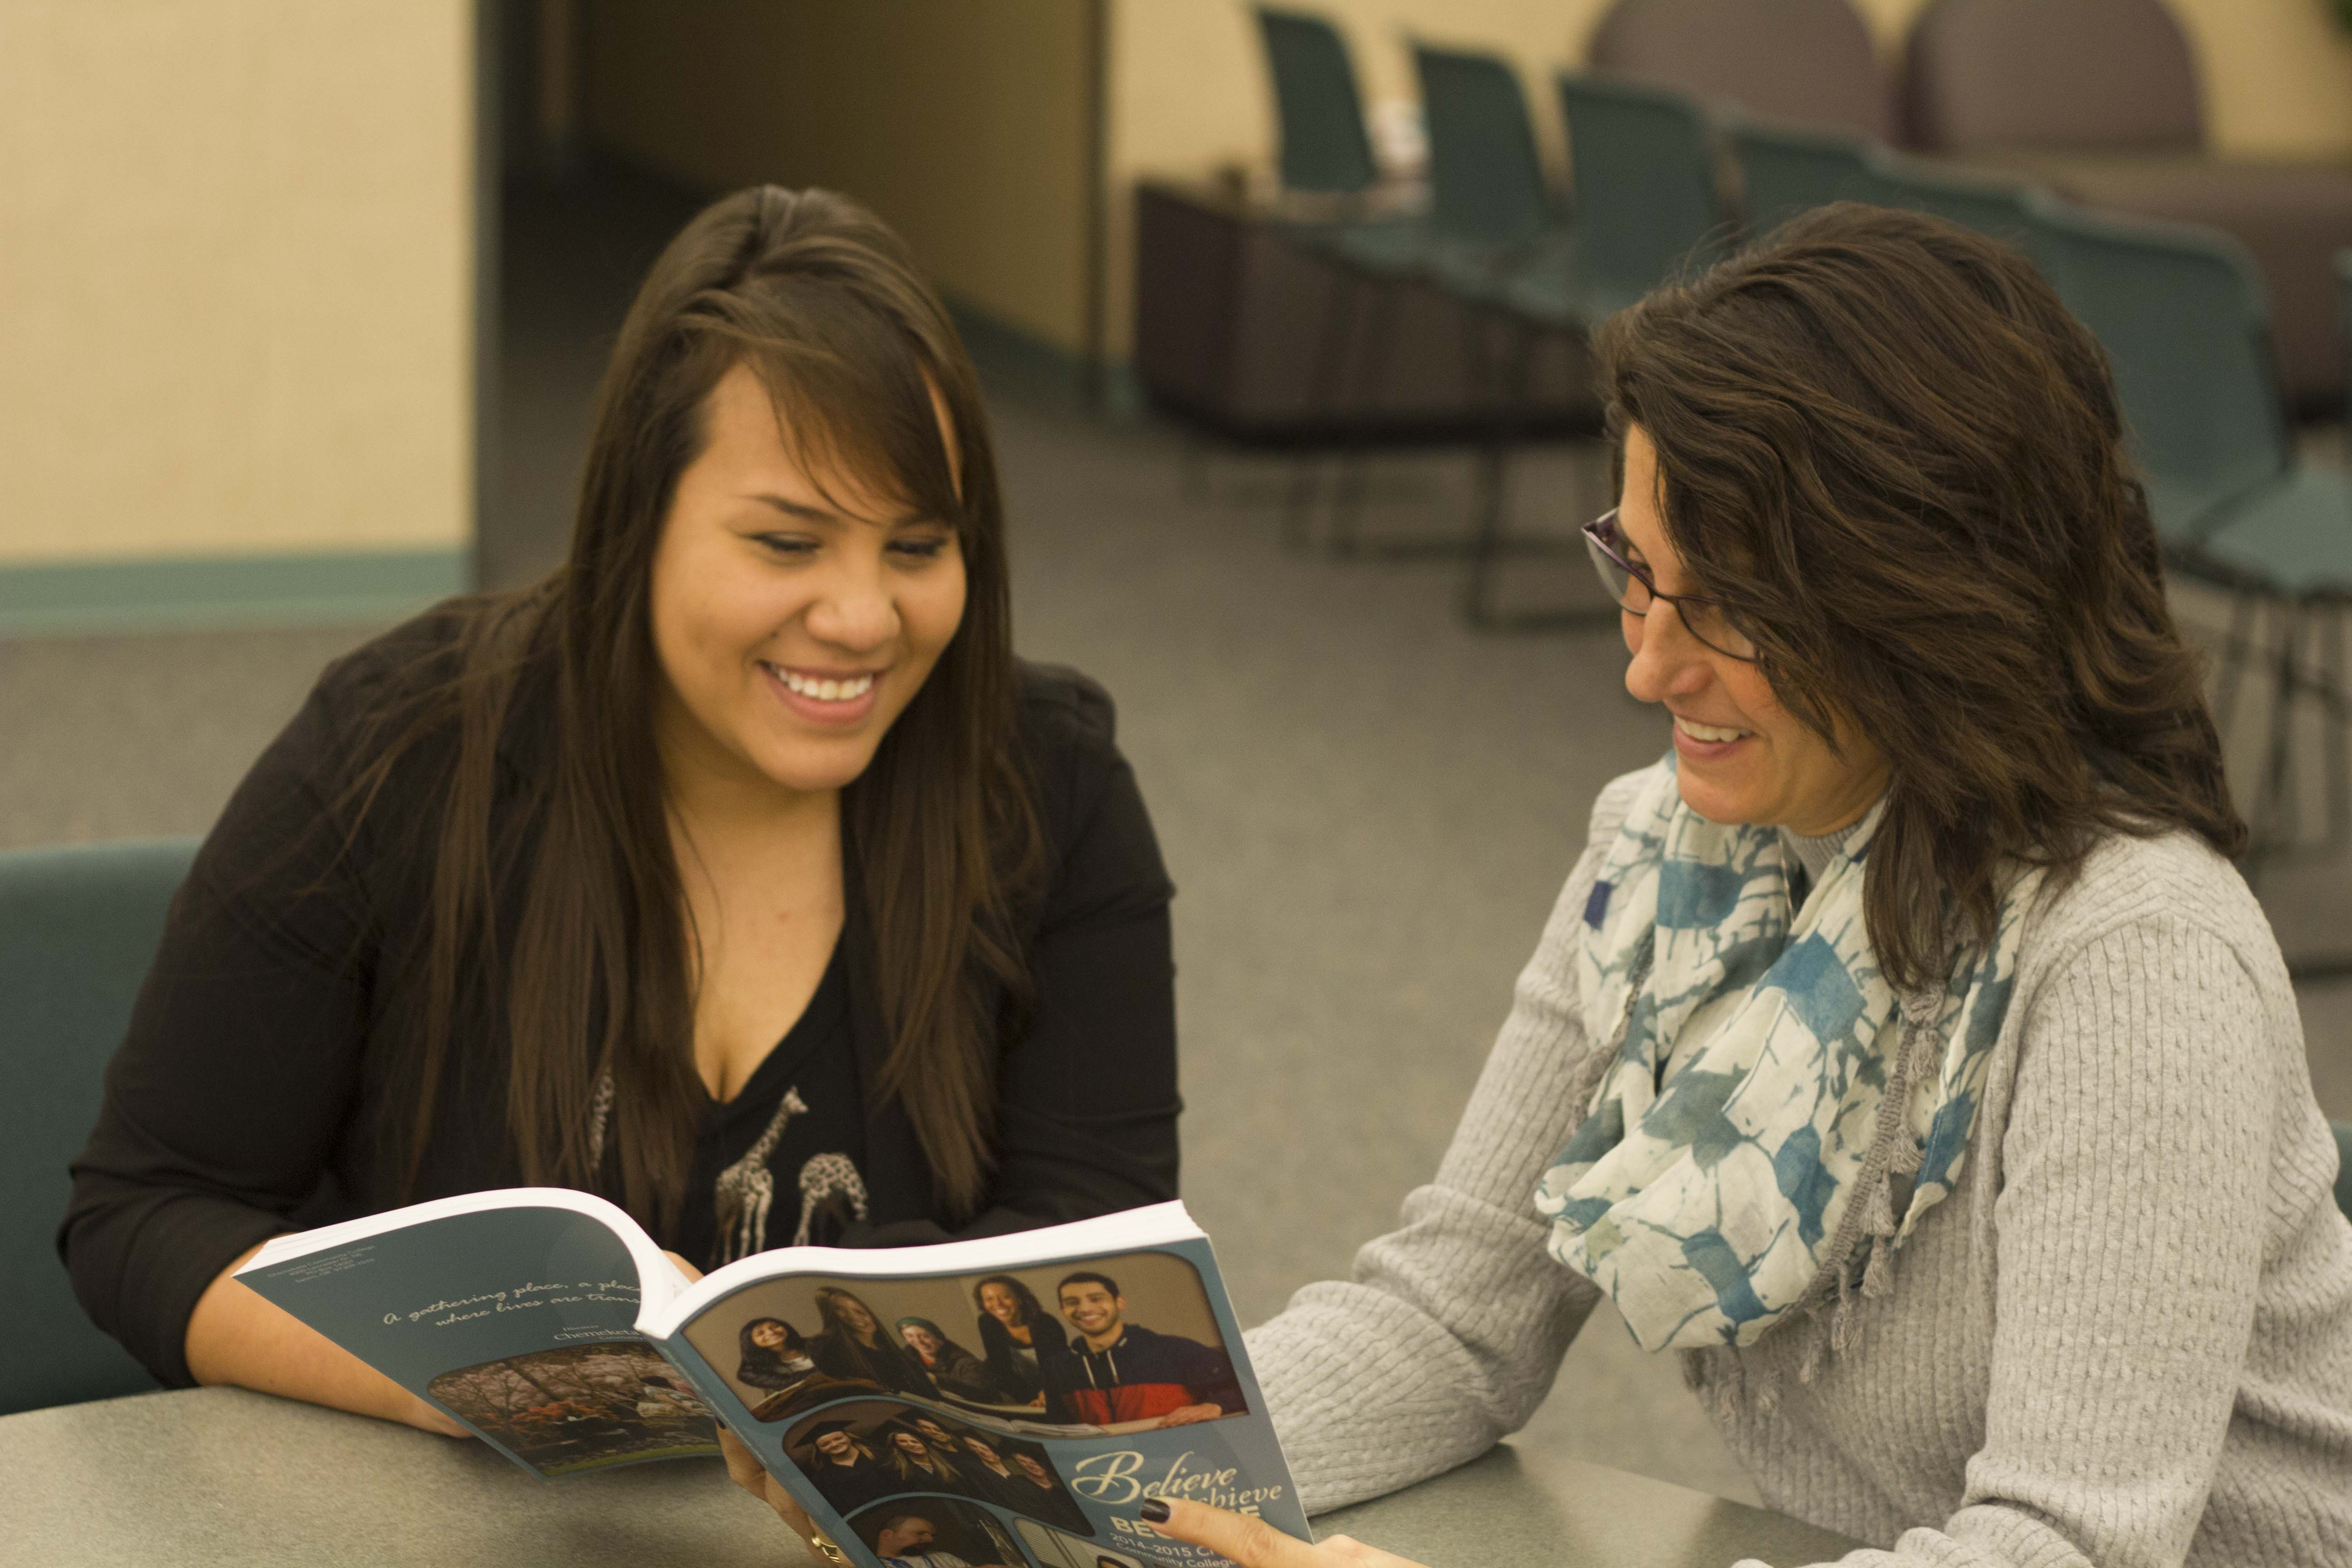 Ceeilia Sanchez (left), a second-year student, discusses the possibility of transferring to Portland State University with Tiffany Borden, an academic adviser for Chemeketa.